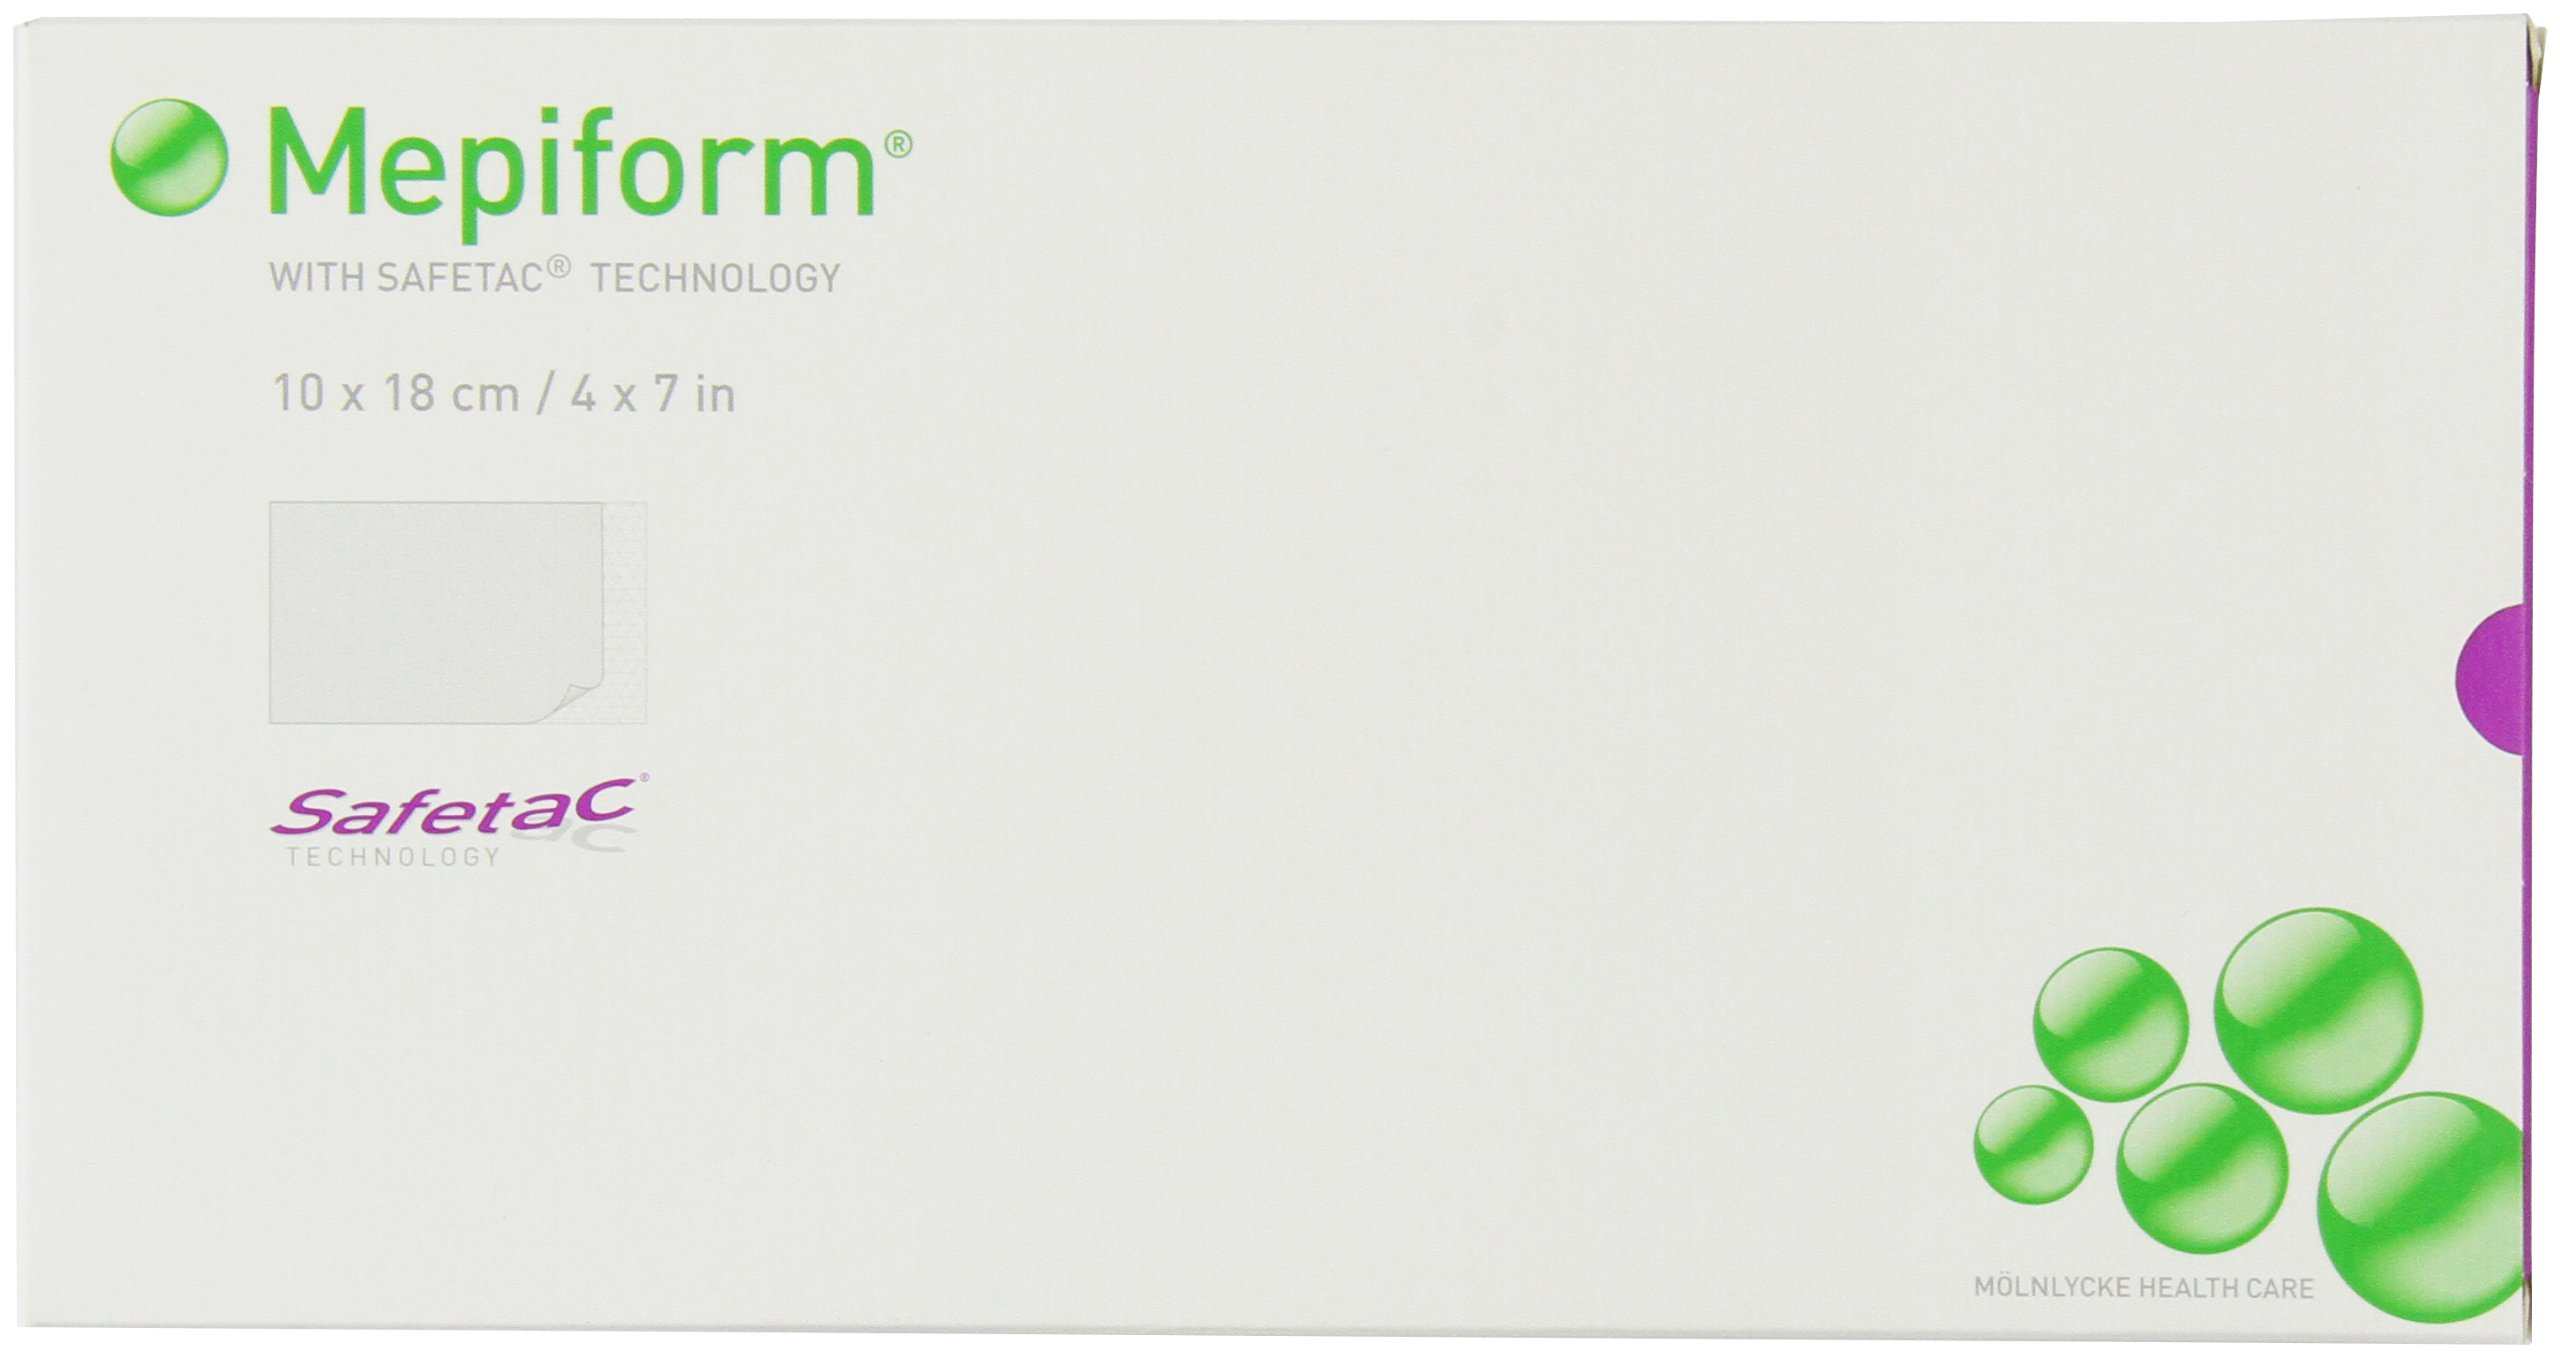 Mepiform with Safetac Technology 4''x7'', 5 Count, Self Adherent Soft Silicone Sheeting for Scar Reduction